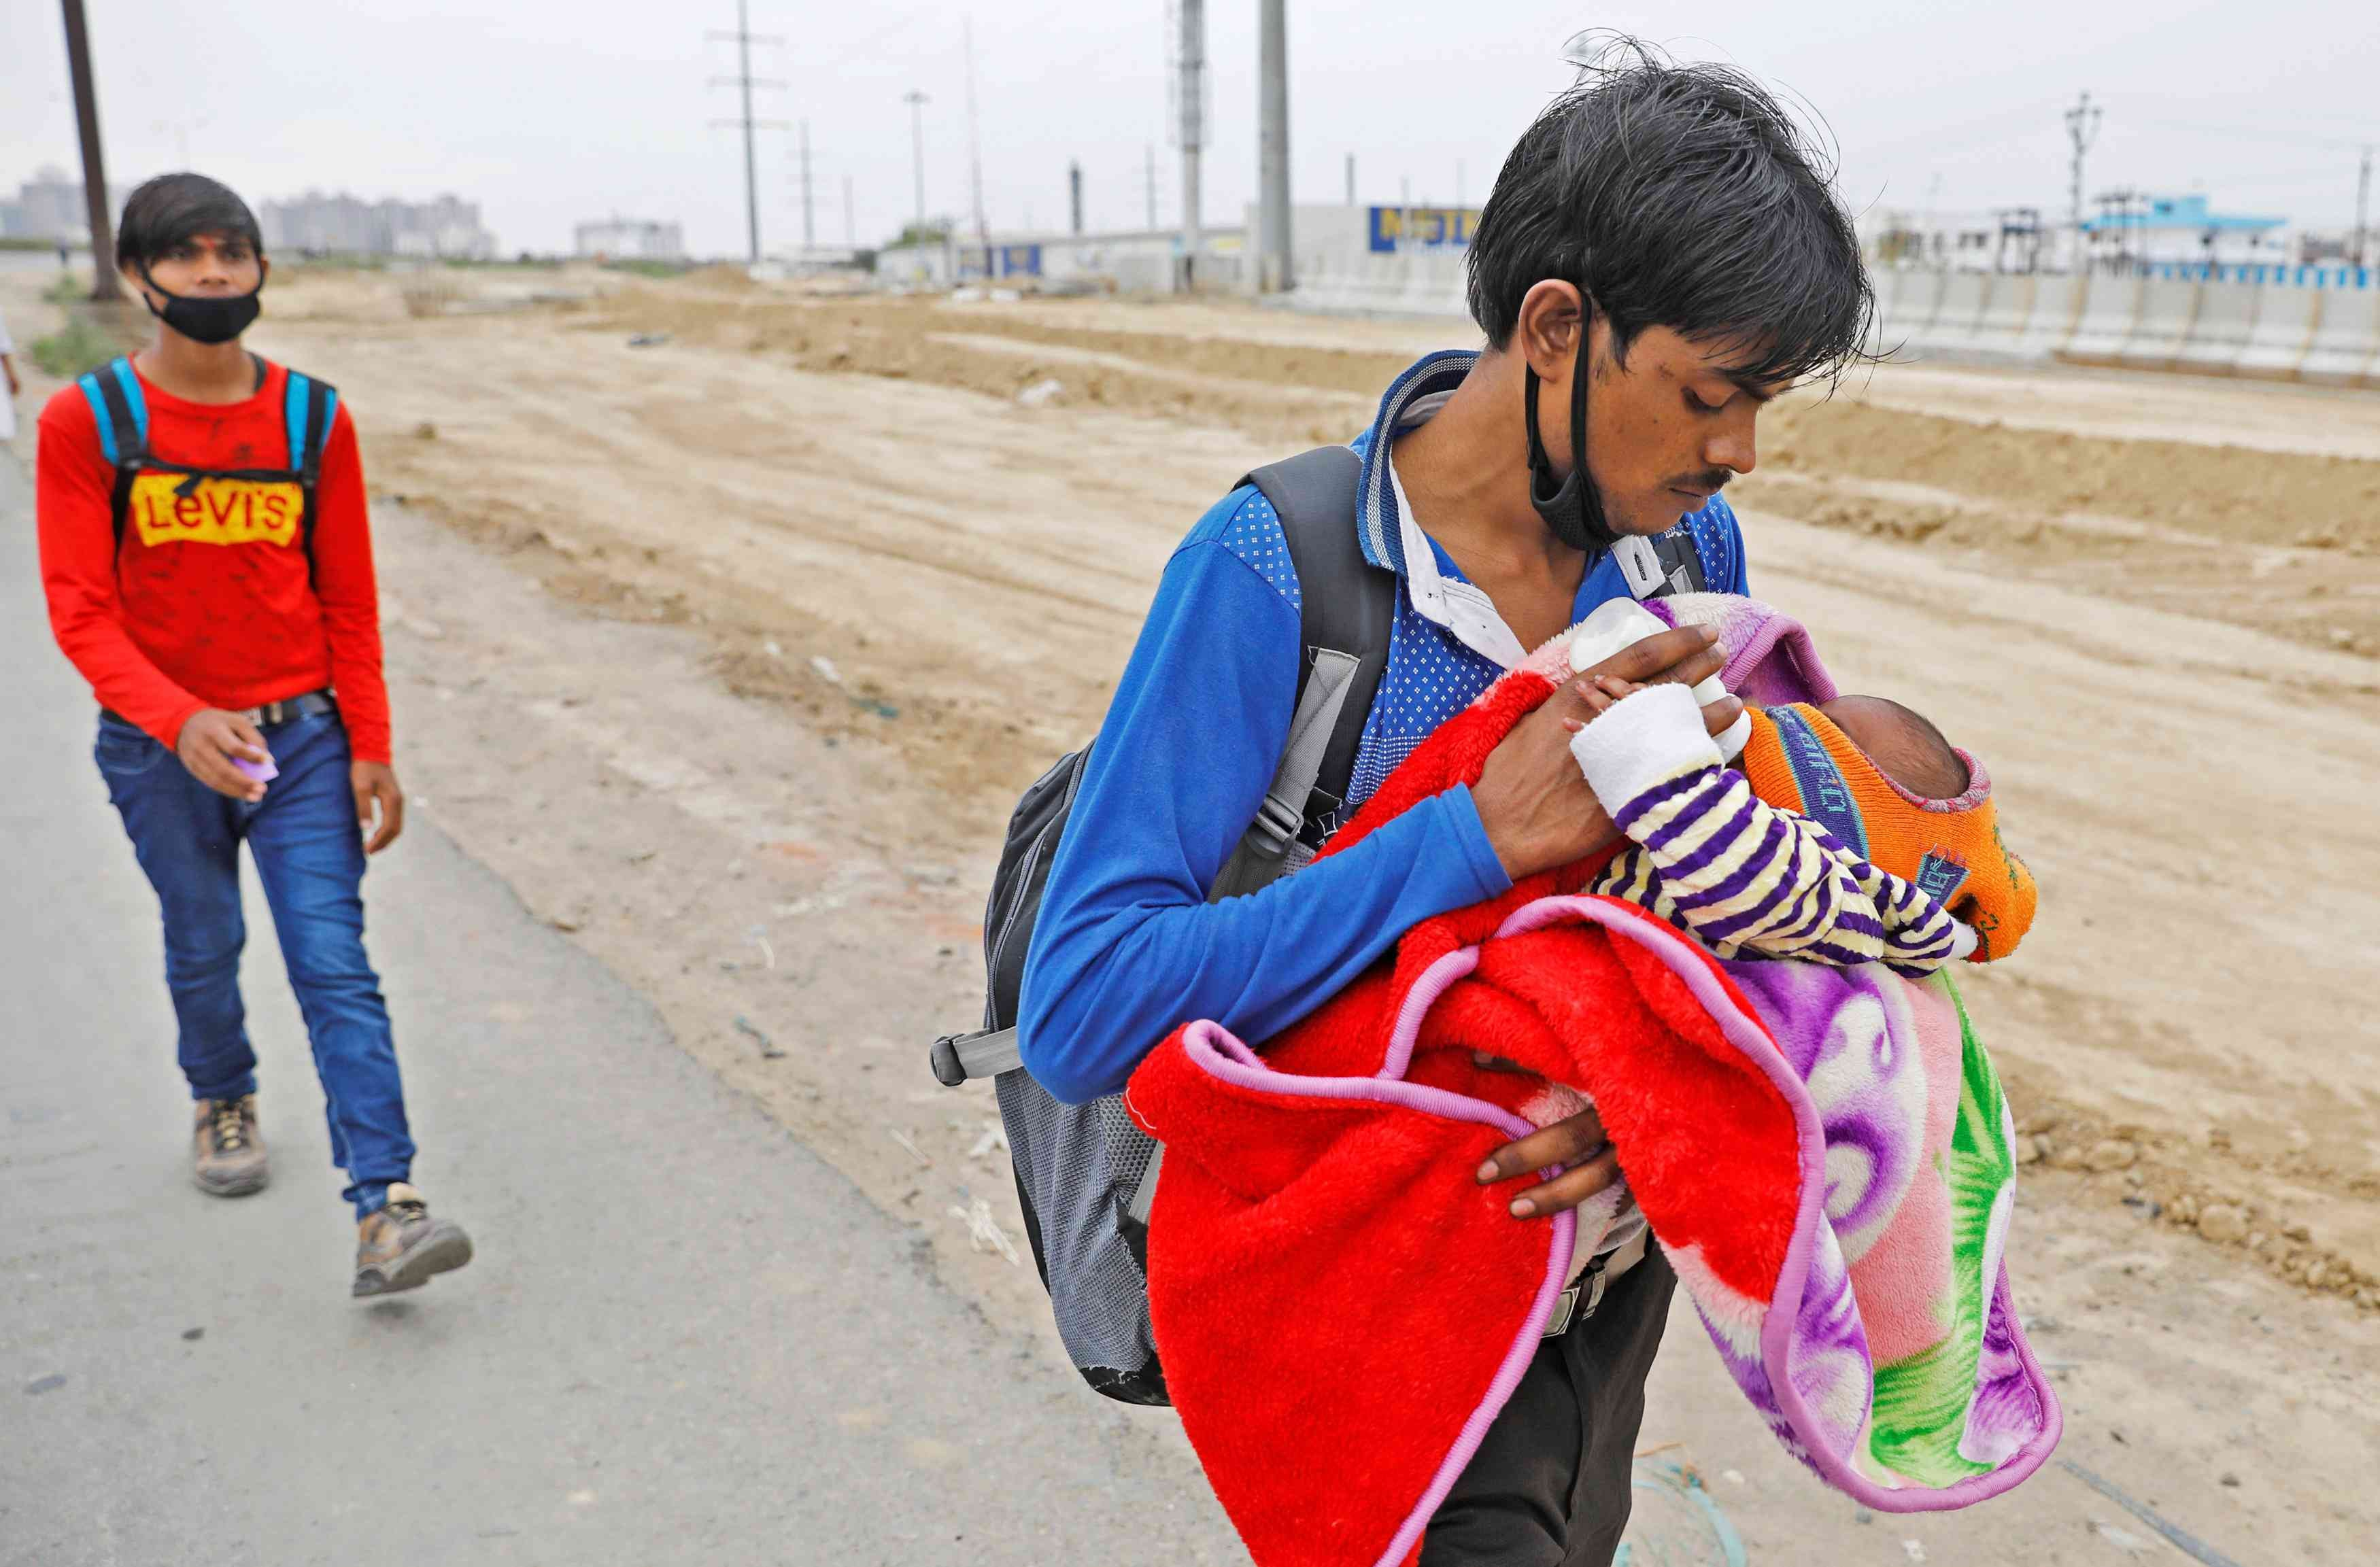 A migrant worker in Ghaziabad feeds his newborn baby as he walks on a highway. — Reuters